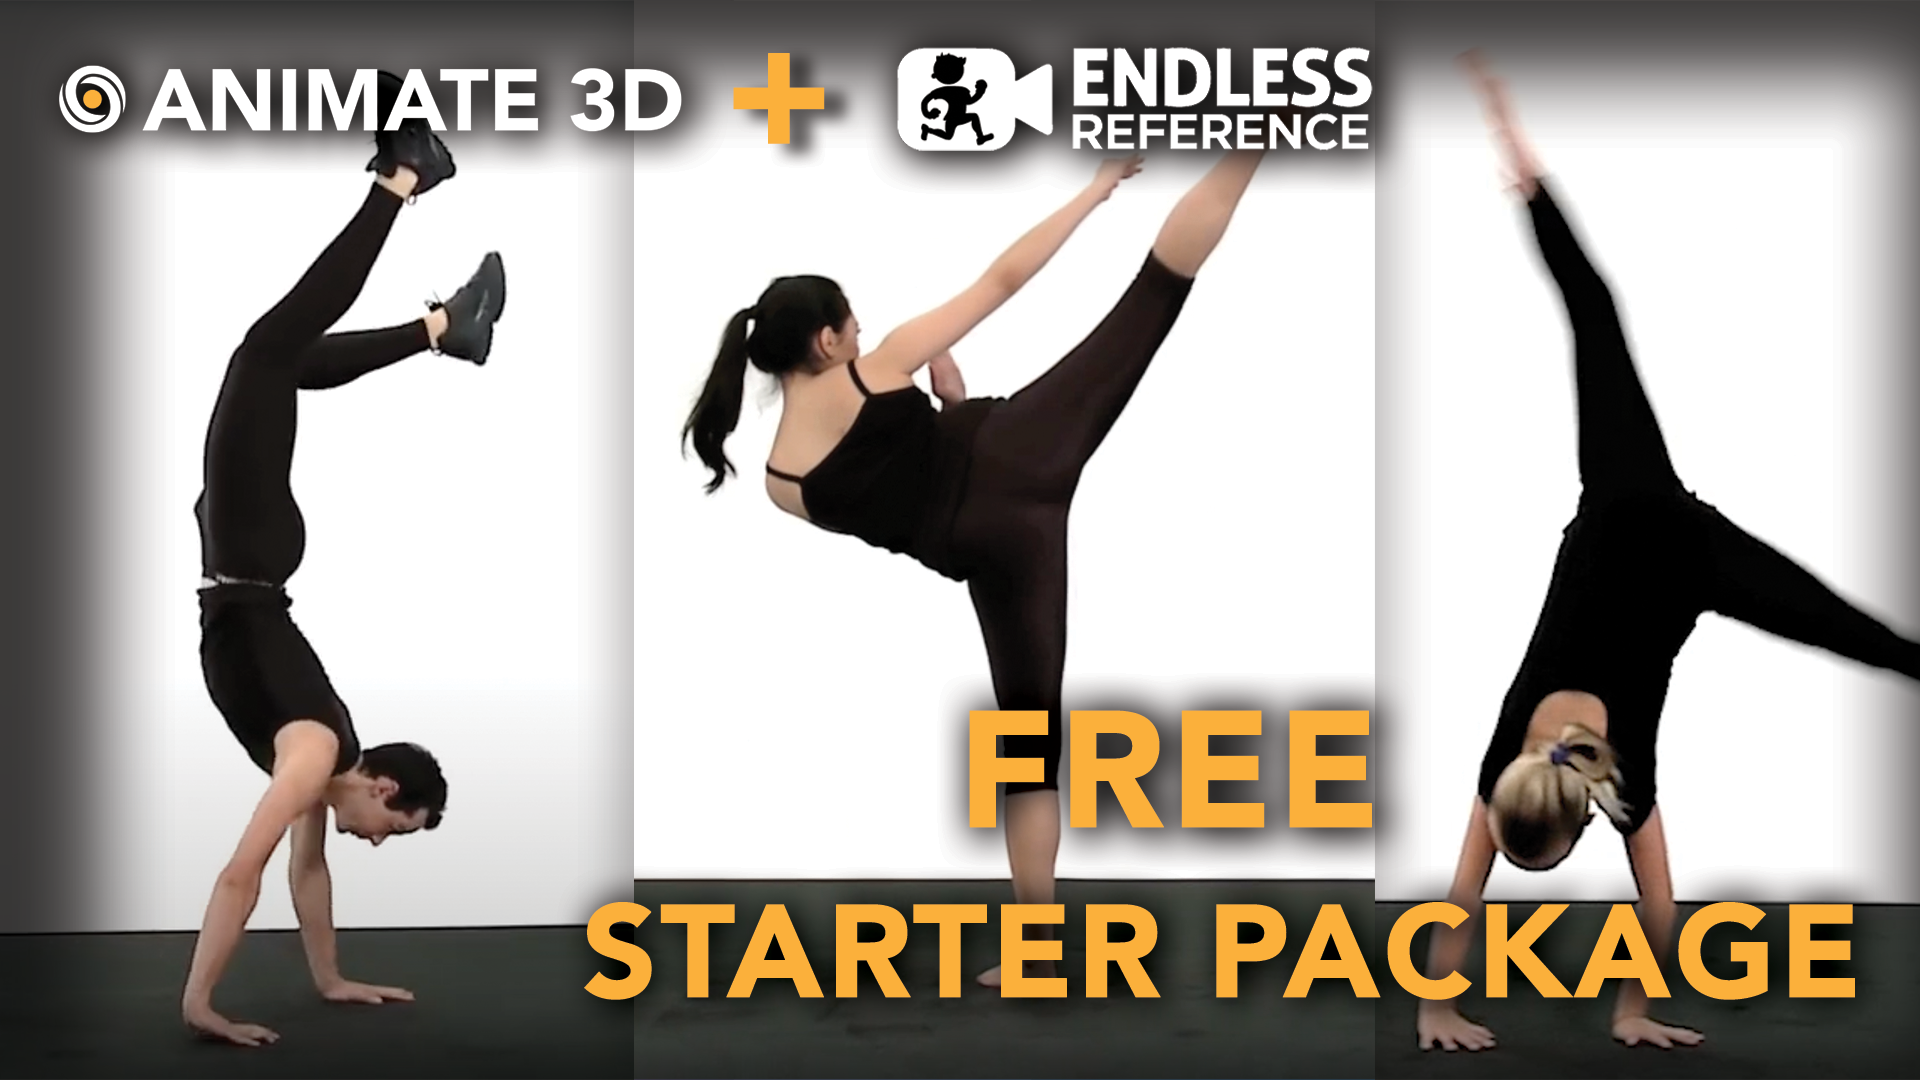 Animate 3D - FREE Starter Package